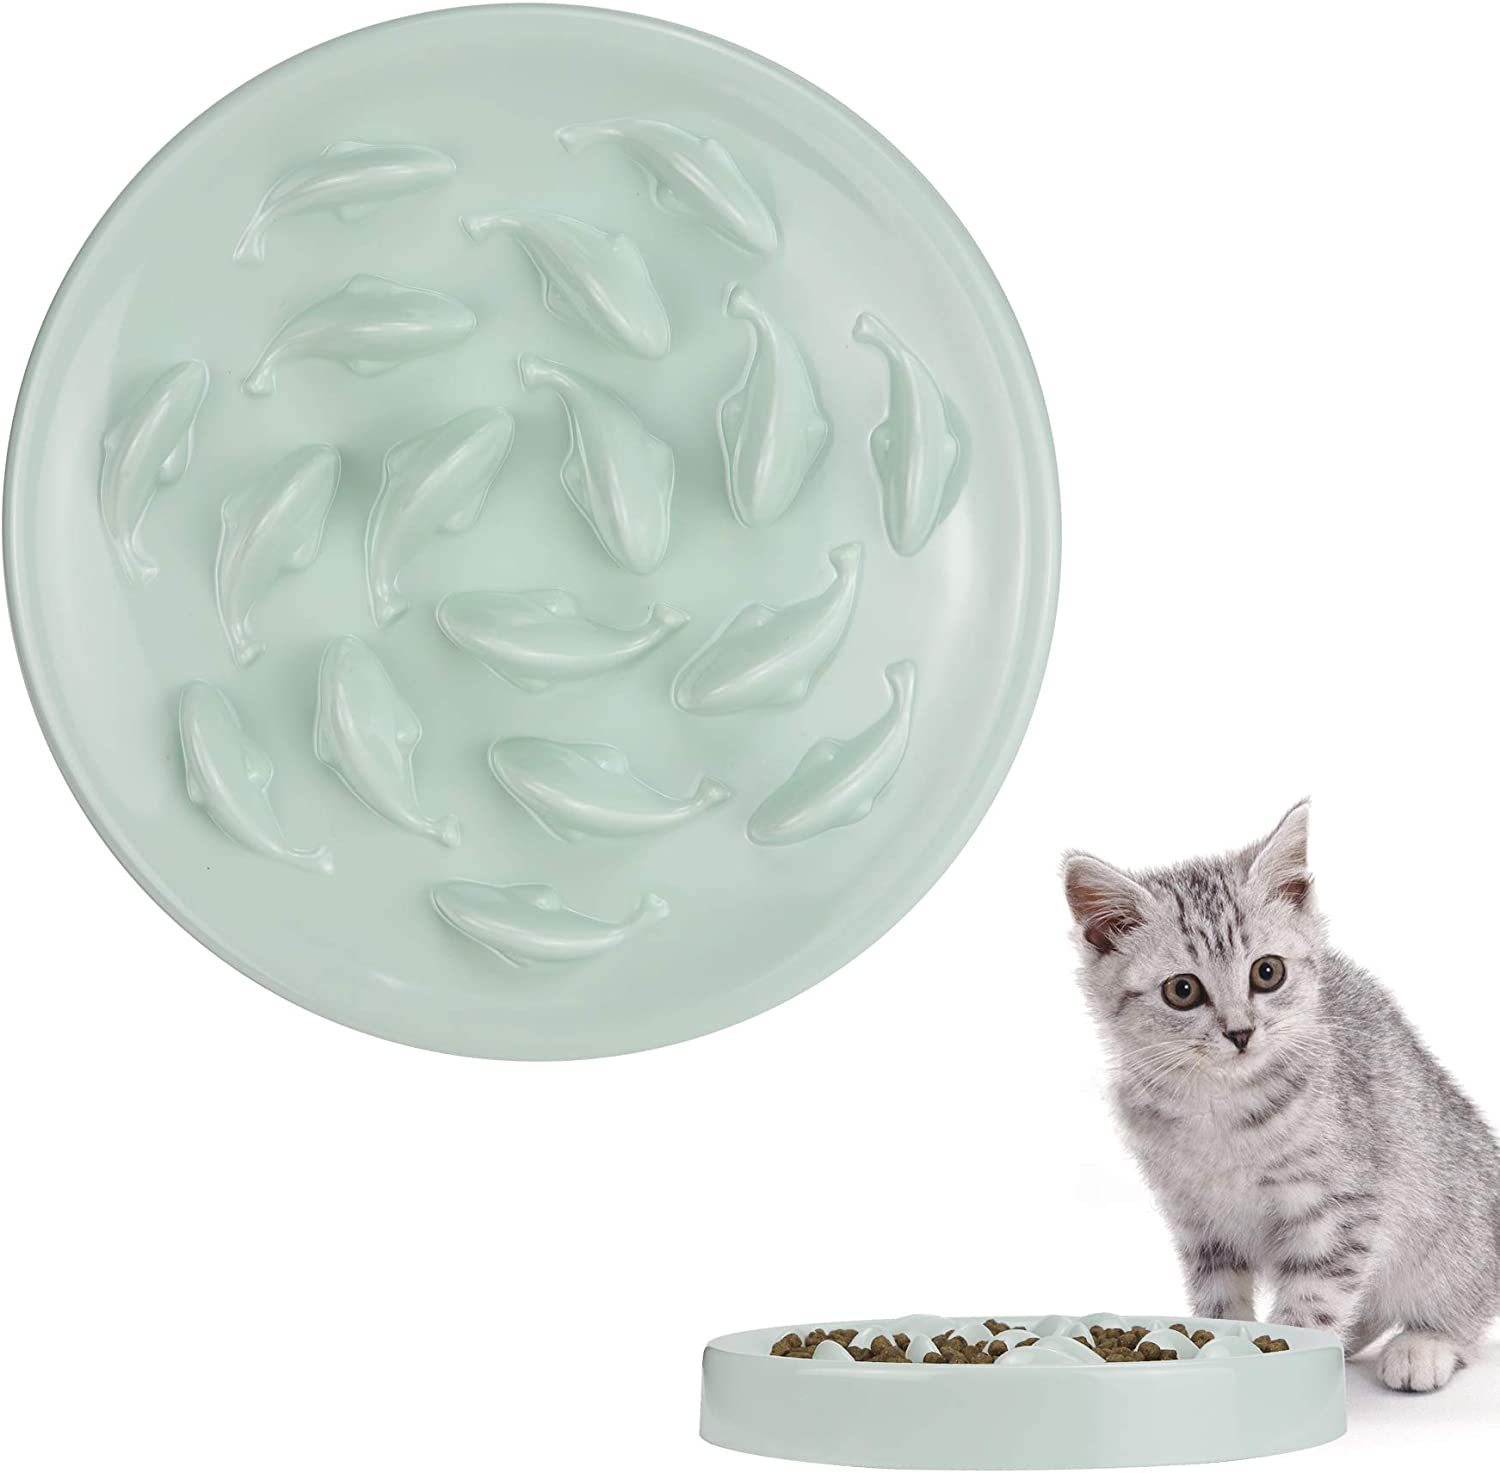 Philbinden Slow Feeder for Cats and Small Dogs,Fish Pool Design Puzzle Cat Bowl Cat Bowl to Slow Down Eating Against Bloat (Melamine Food Grade Material Green and Easy to Clean)